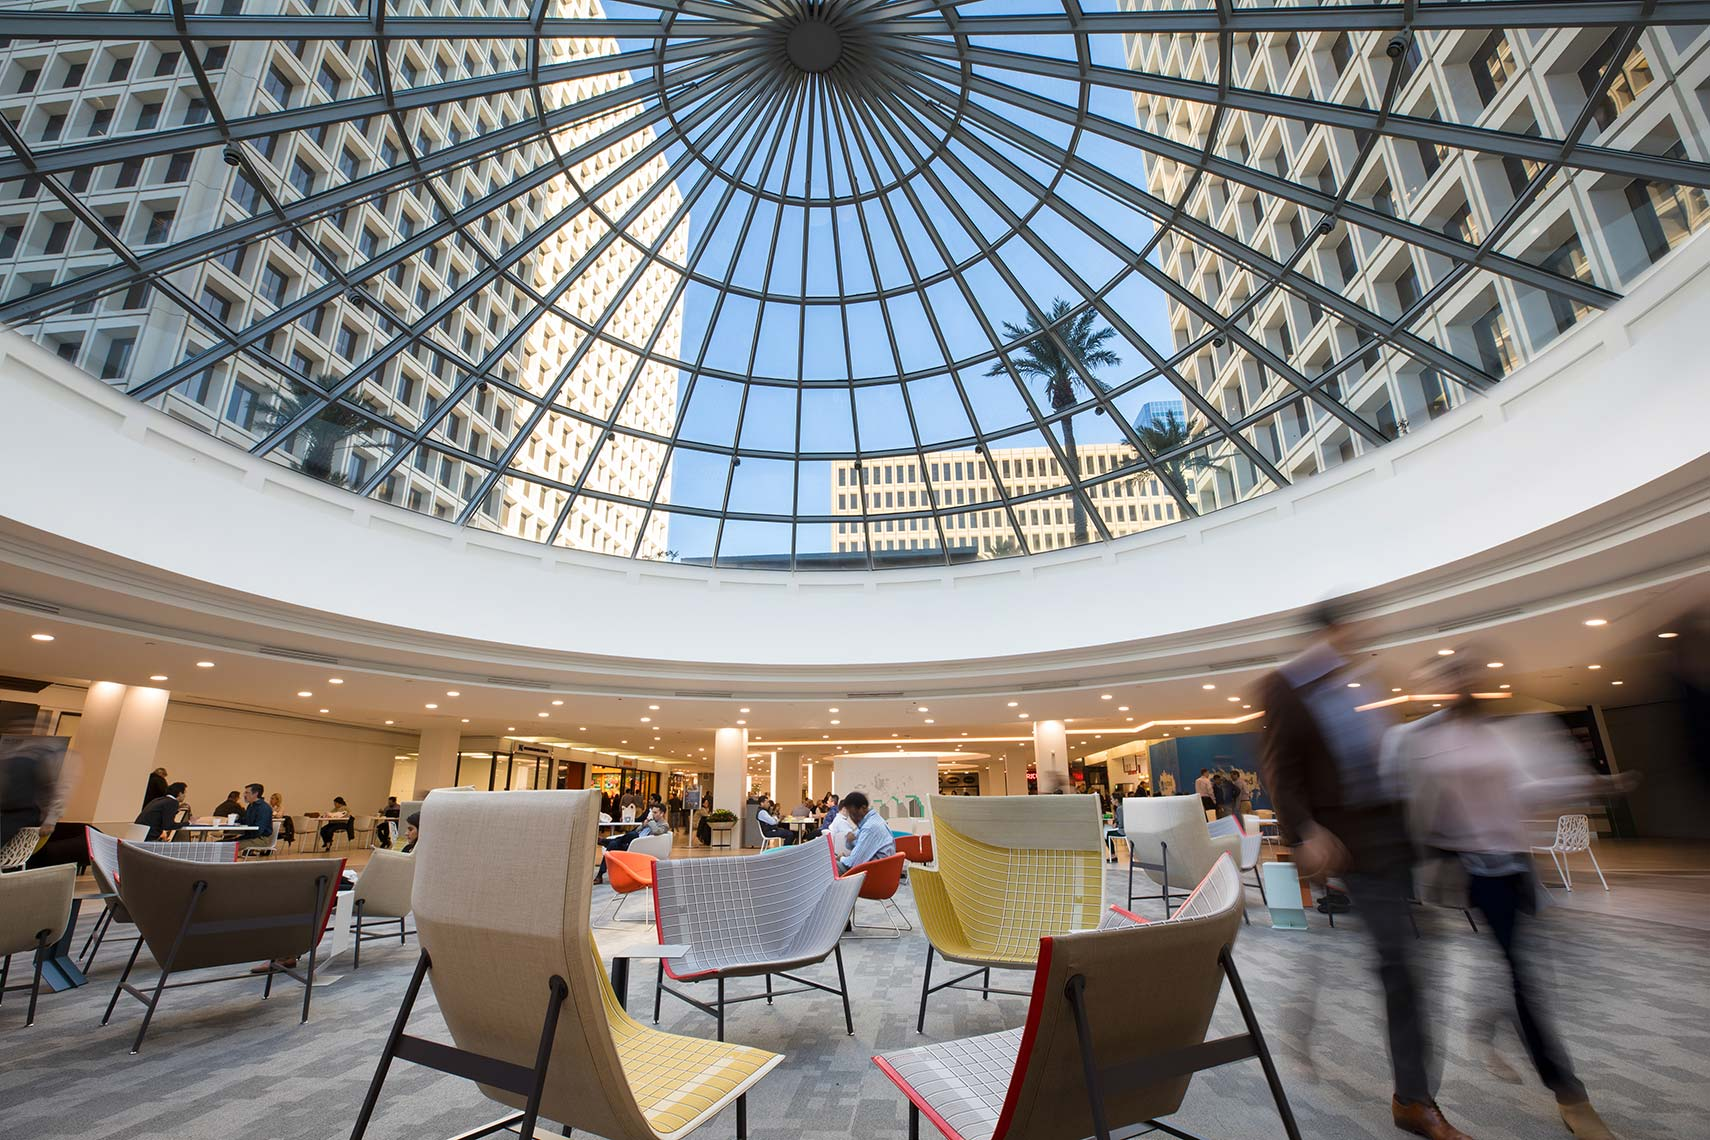 a view of office buildings through large circular skylight at Greenway Plaza in Houston by Architectural photographer